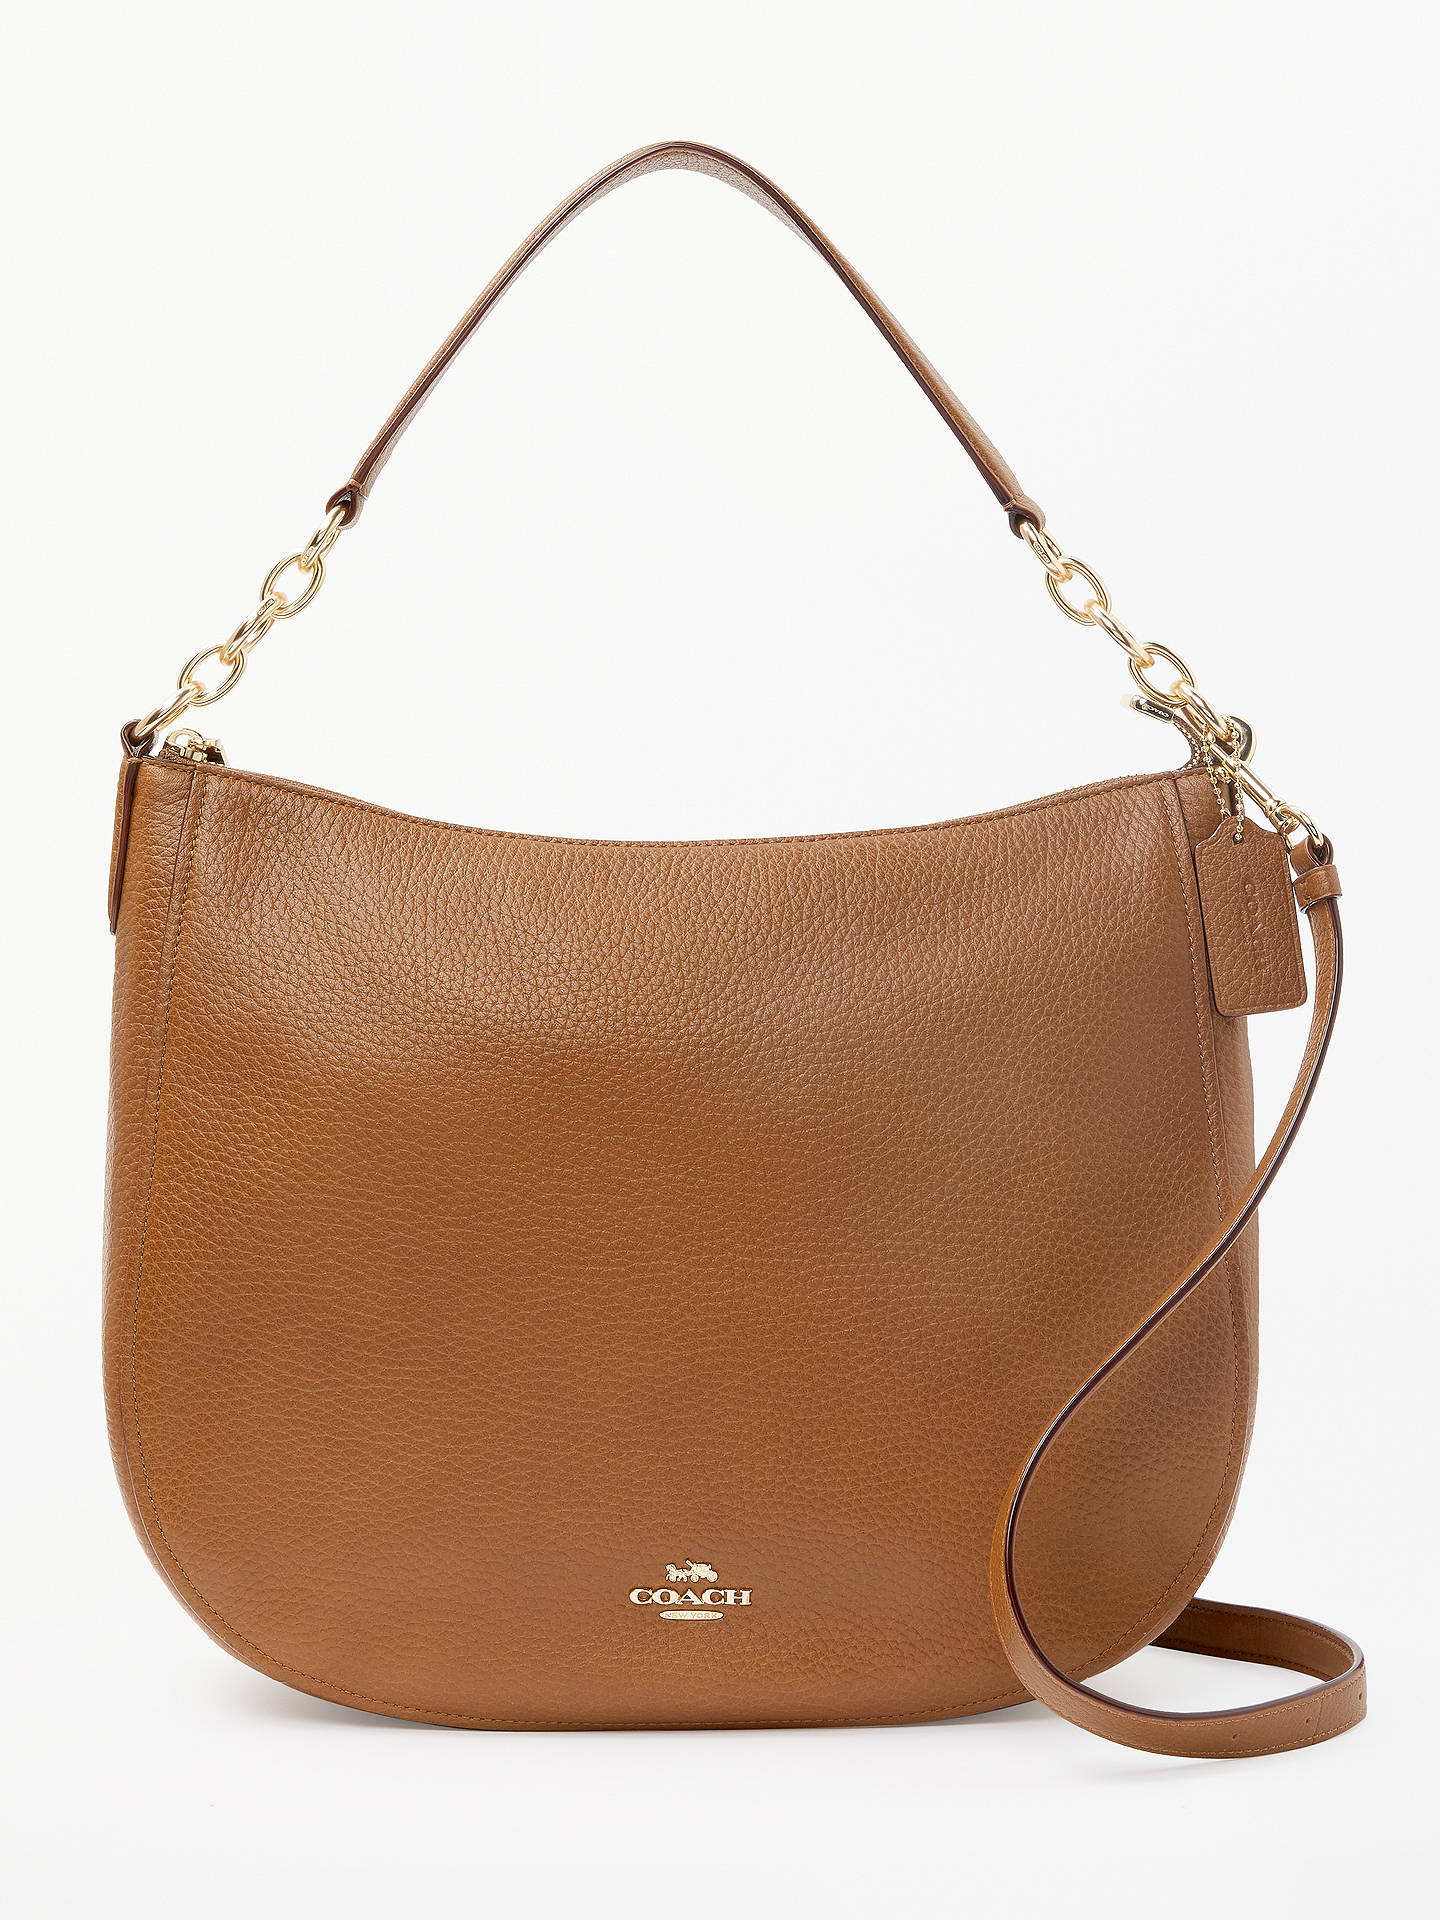 34448e012 Buy Coach Chelsea 32 Polished Leather Hobo Bag, 1941 Saddle Online at  johnlewis.com ...